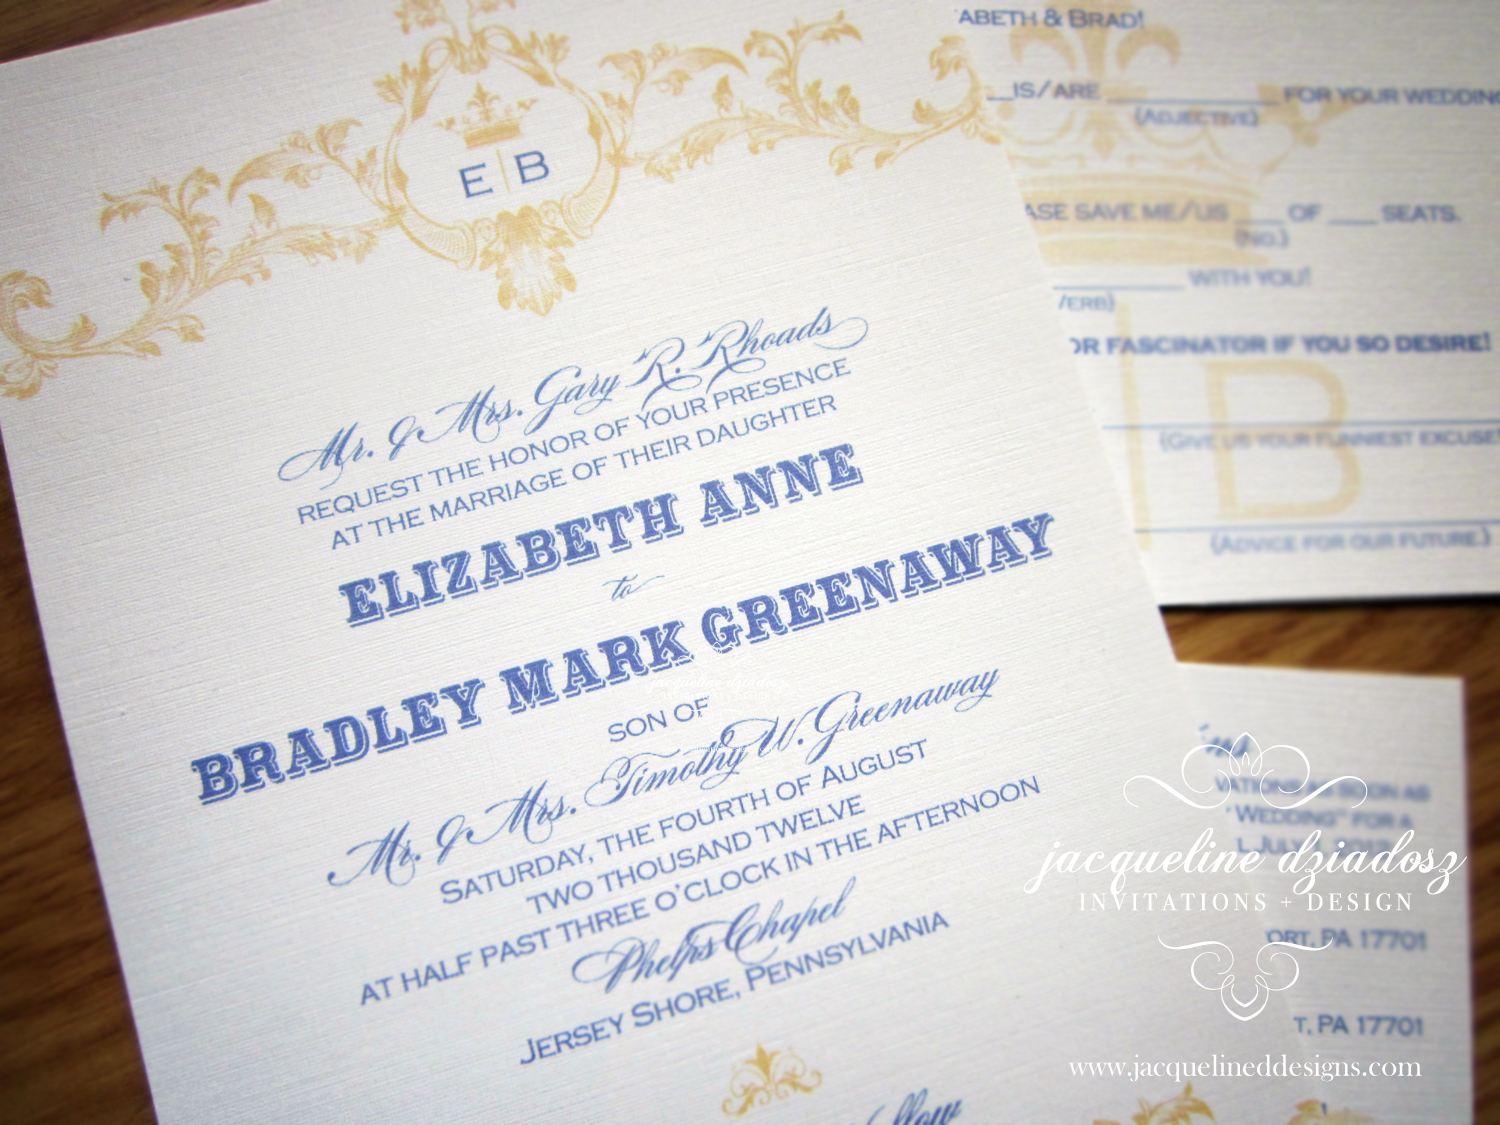 Elizabeth & Brad\'s Parisian Wedding Invitations | Jacqueline ...